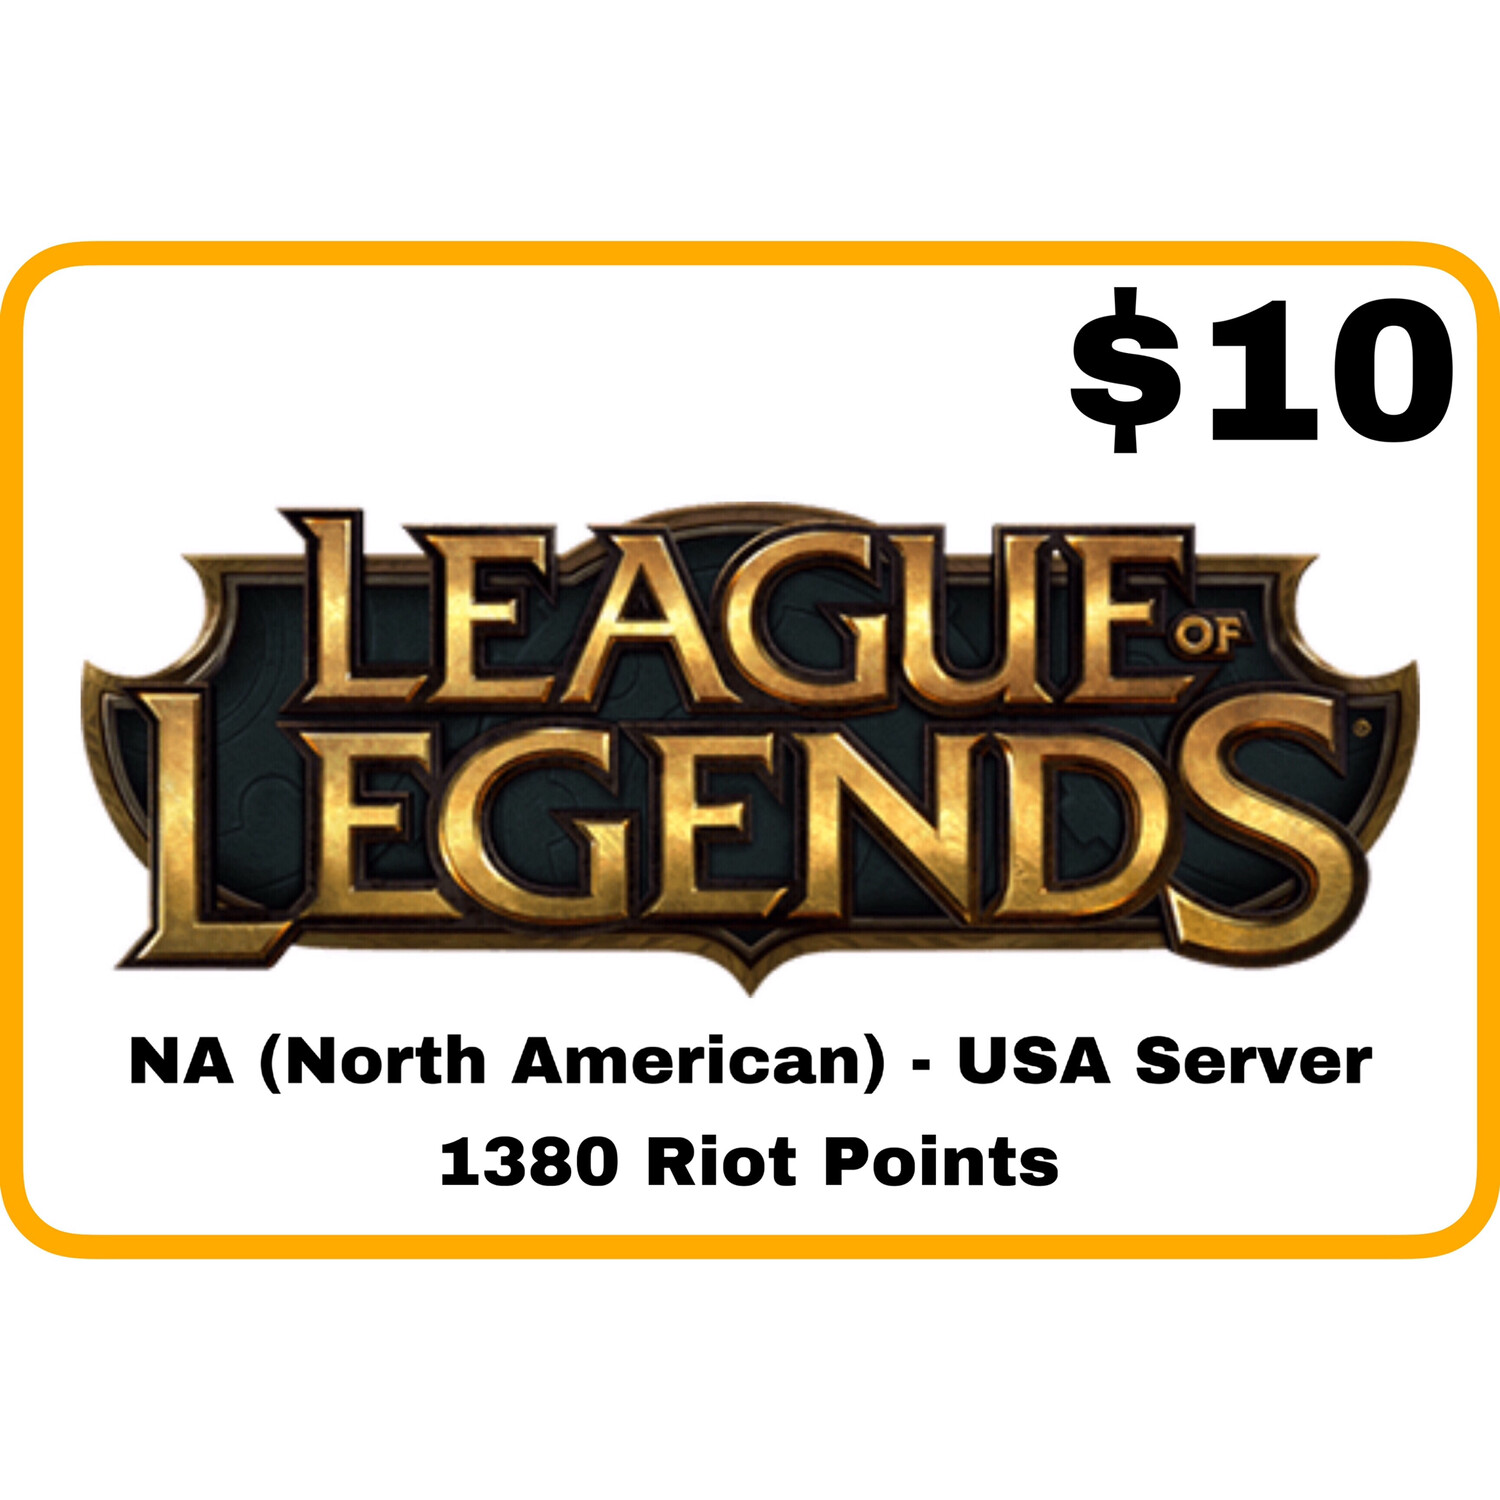 League of Legends $10 Gift Card code - 1380 Riot Points - NA Server (USA)